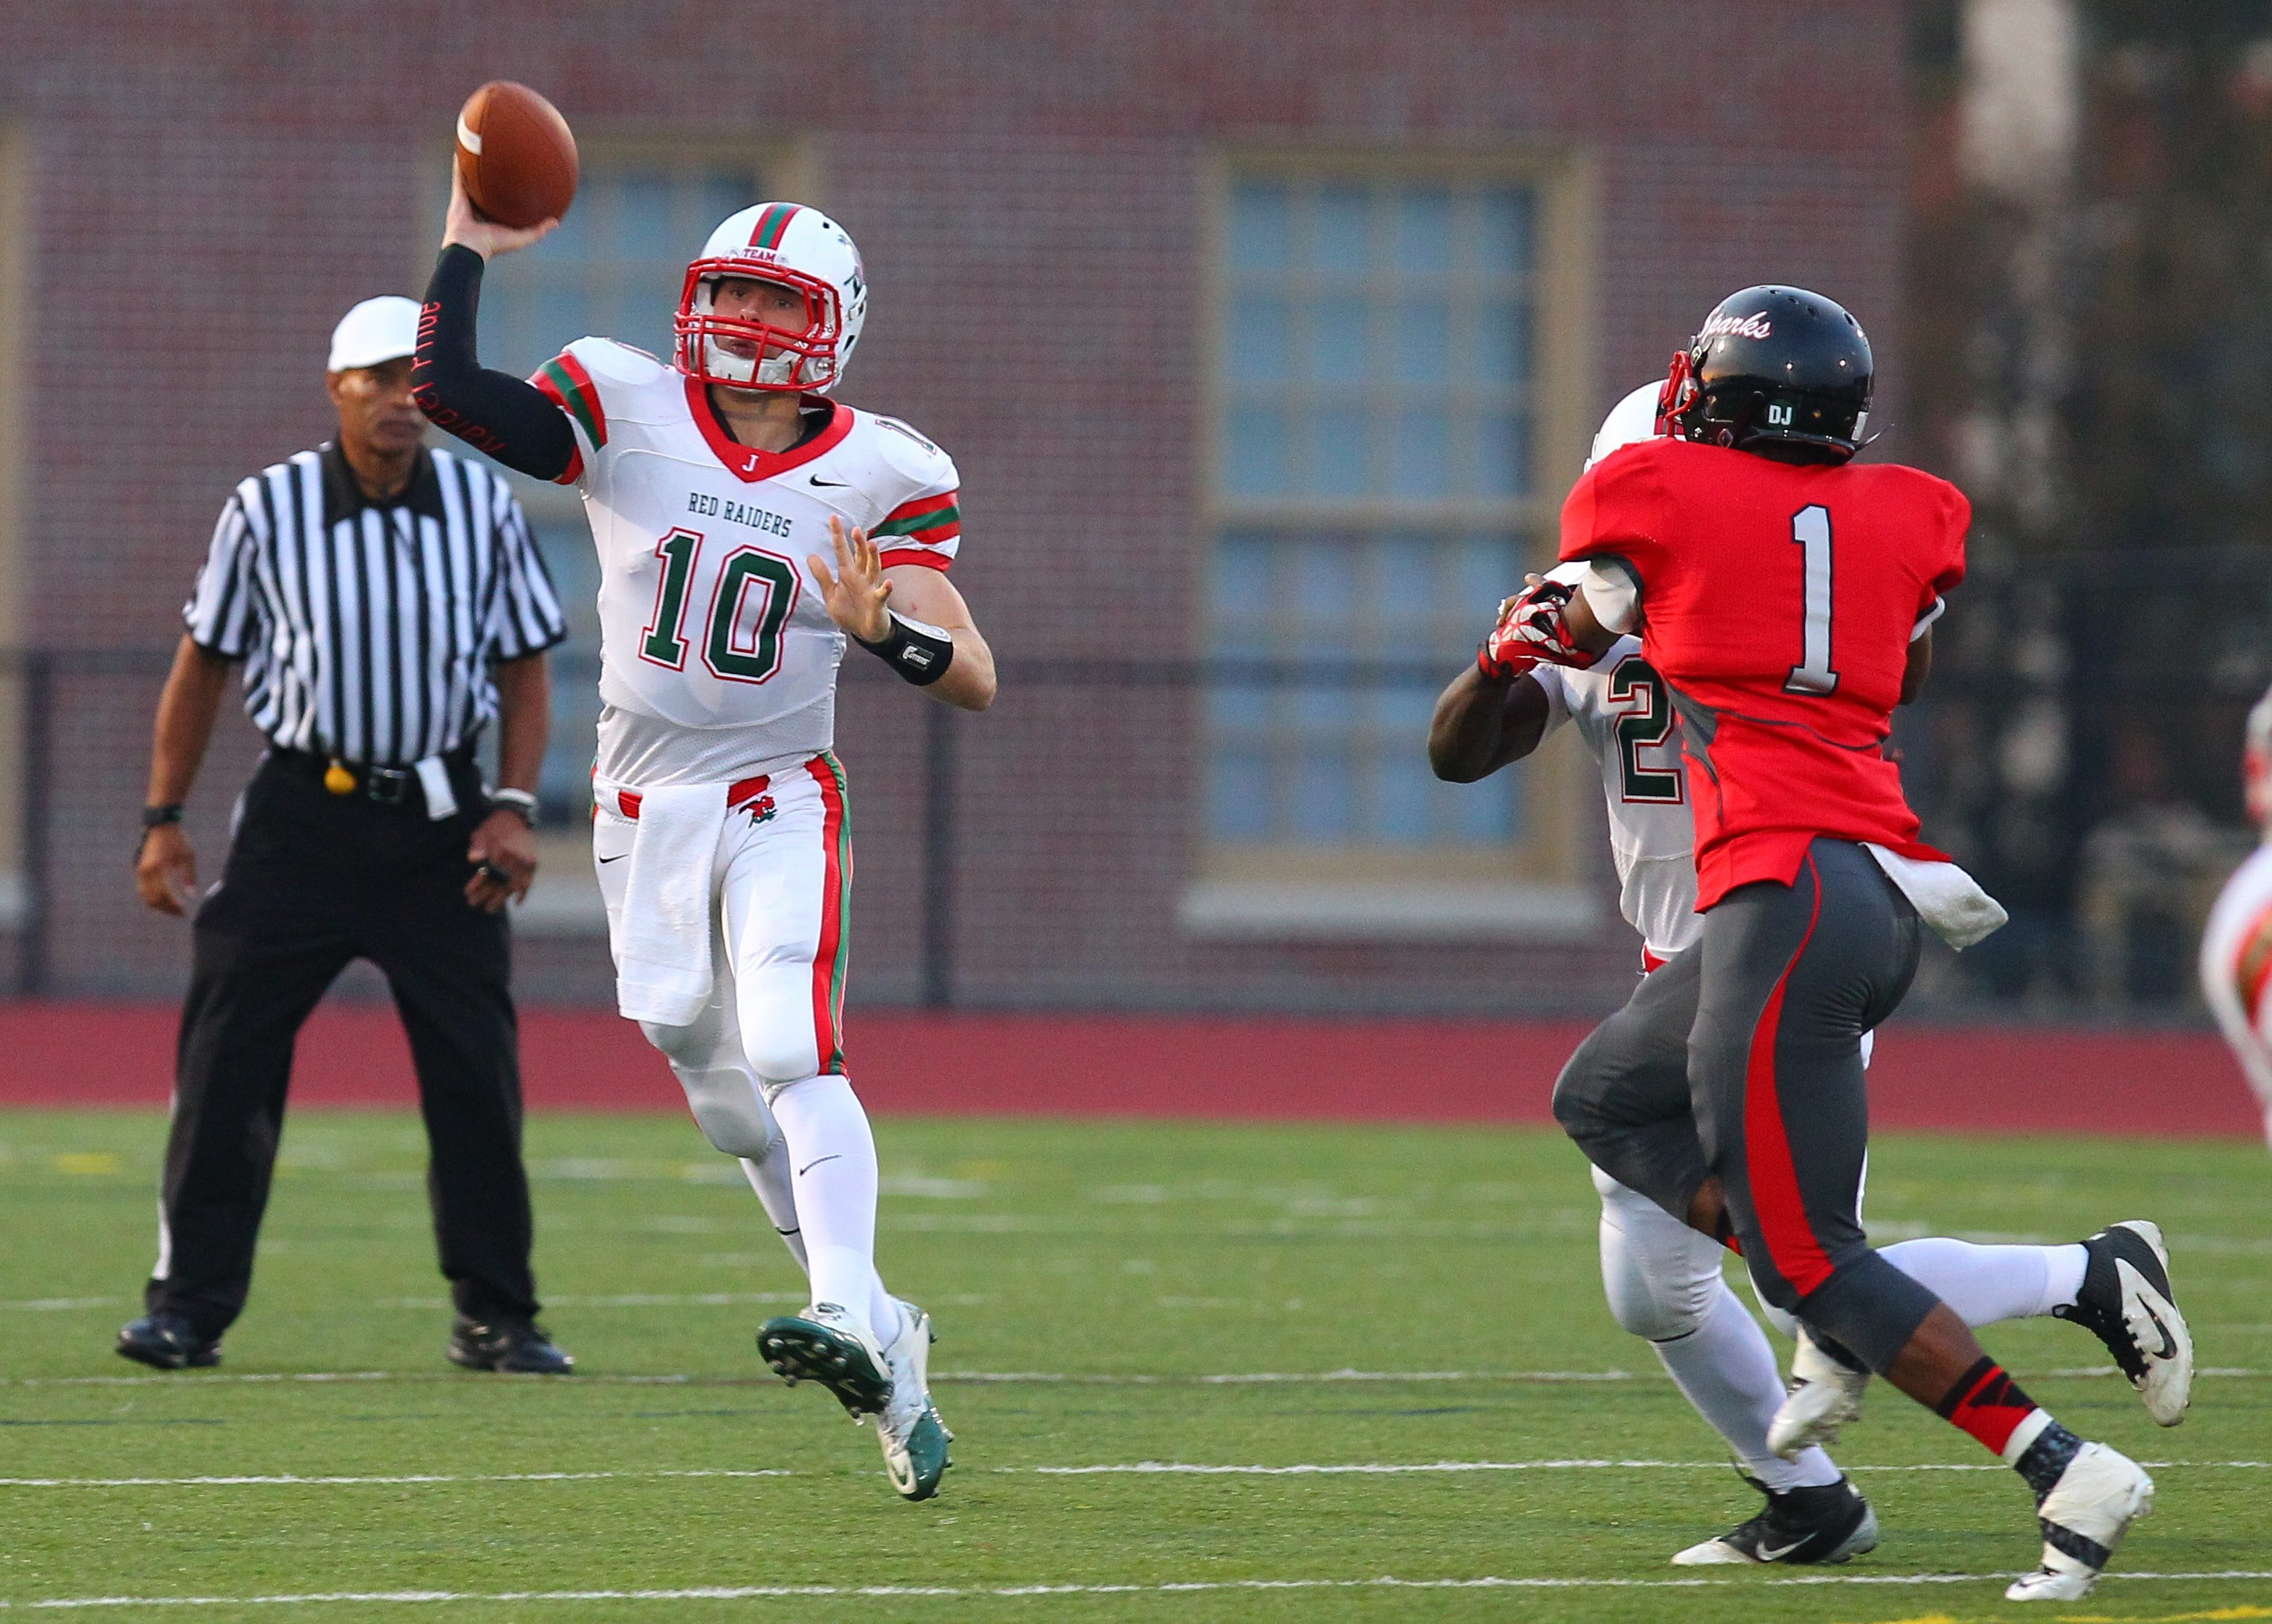 Quarterback Jacob Sisson has directed Jamestown to more than 50 points in every game.